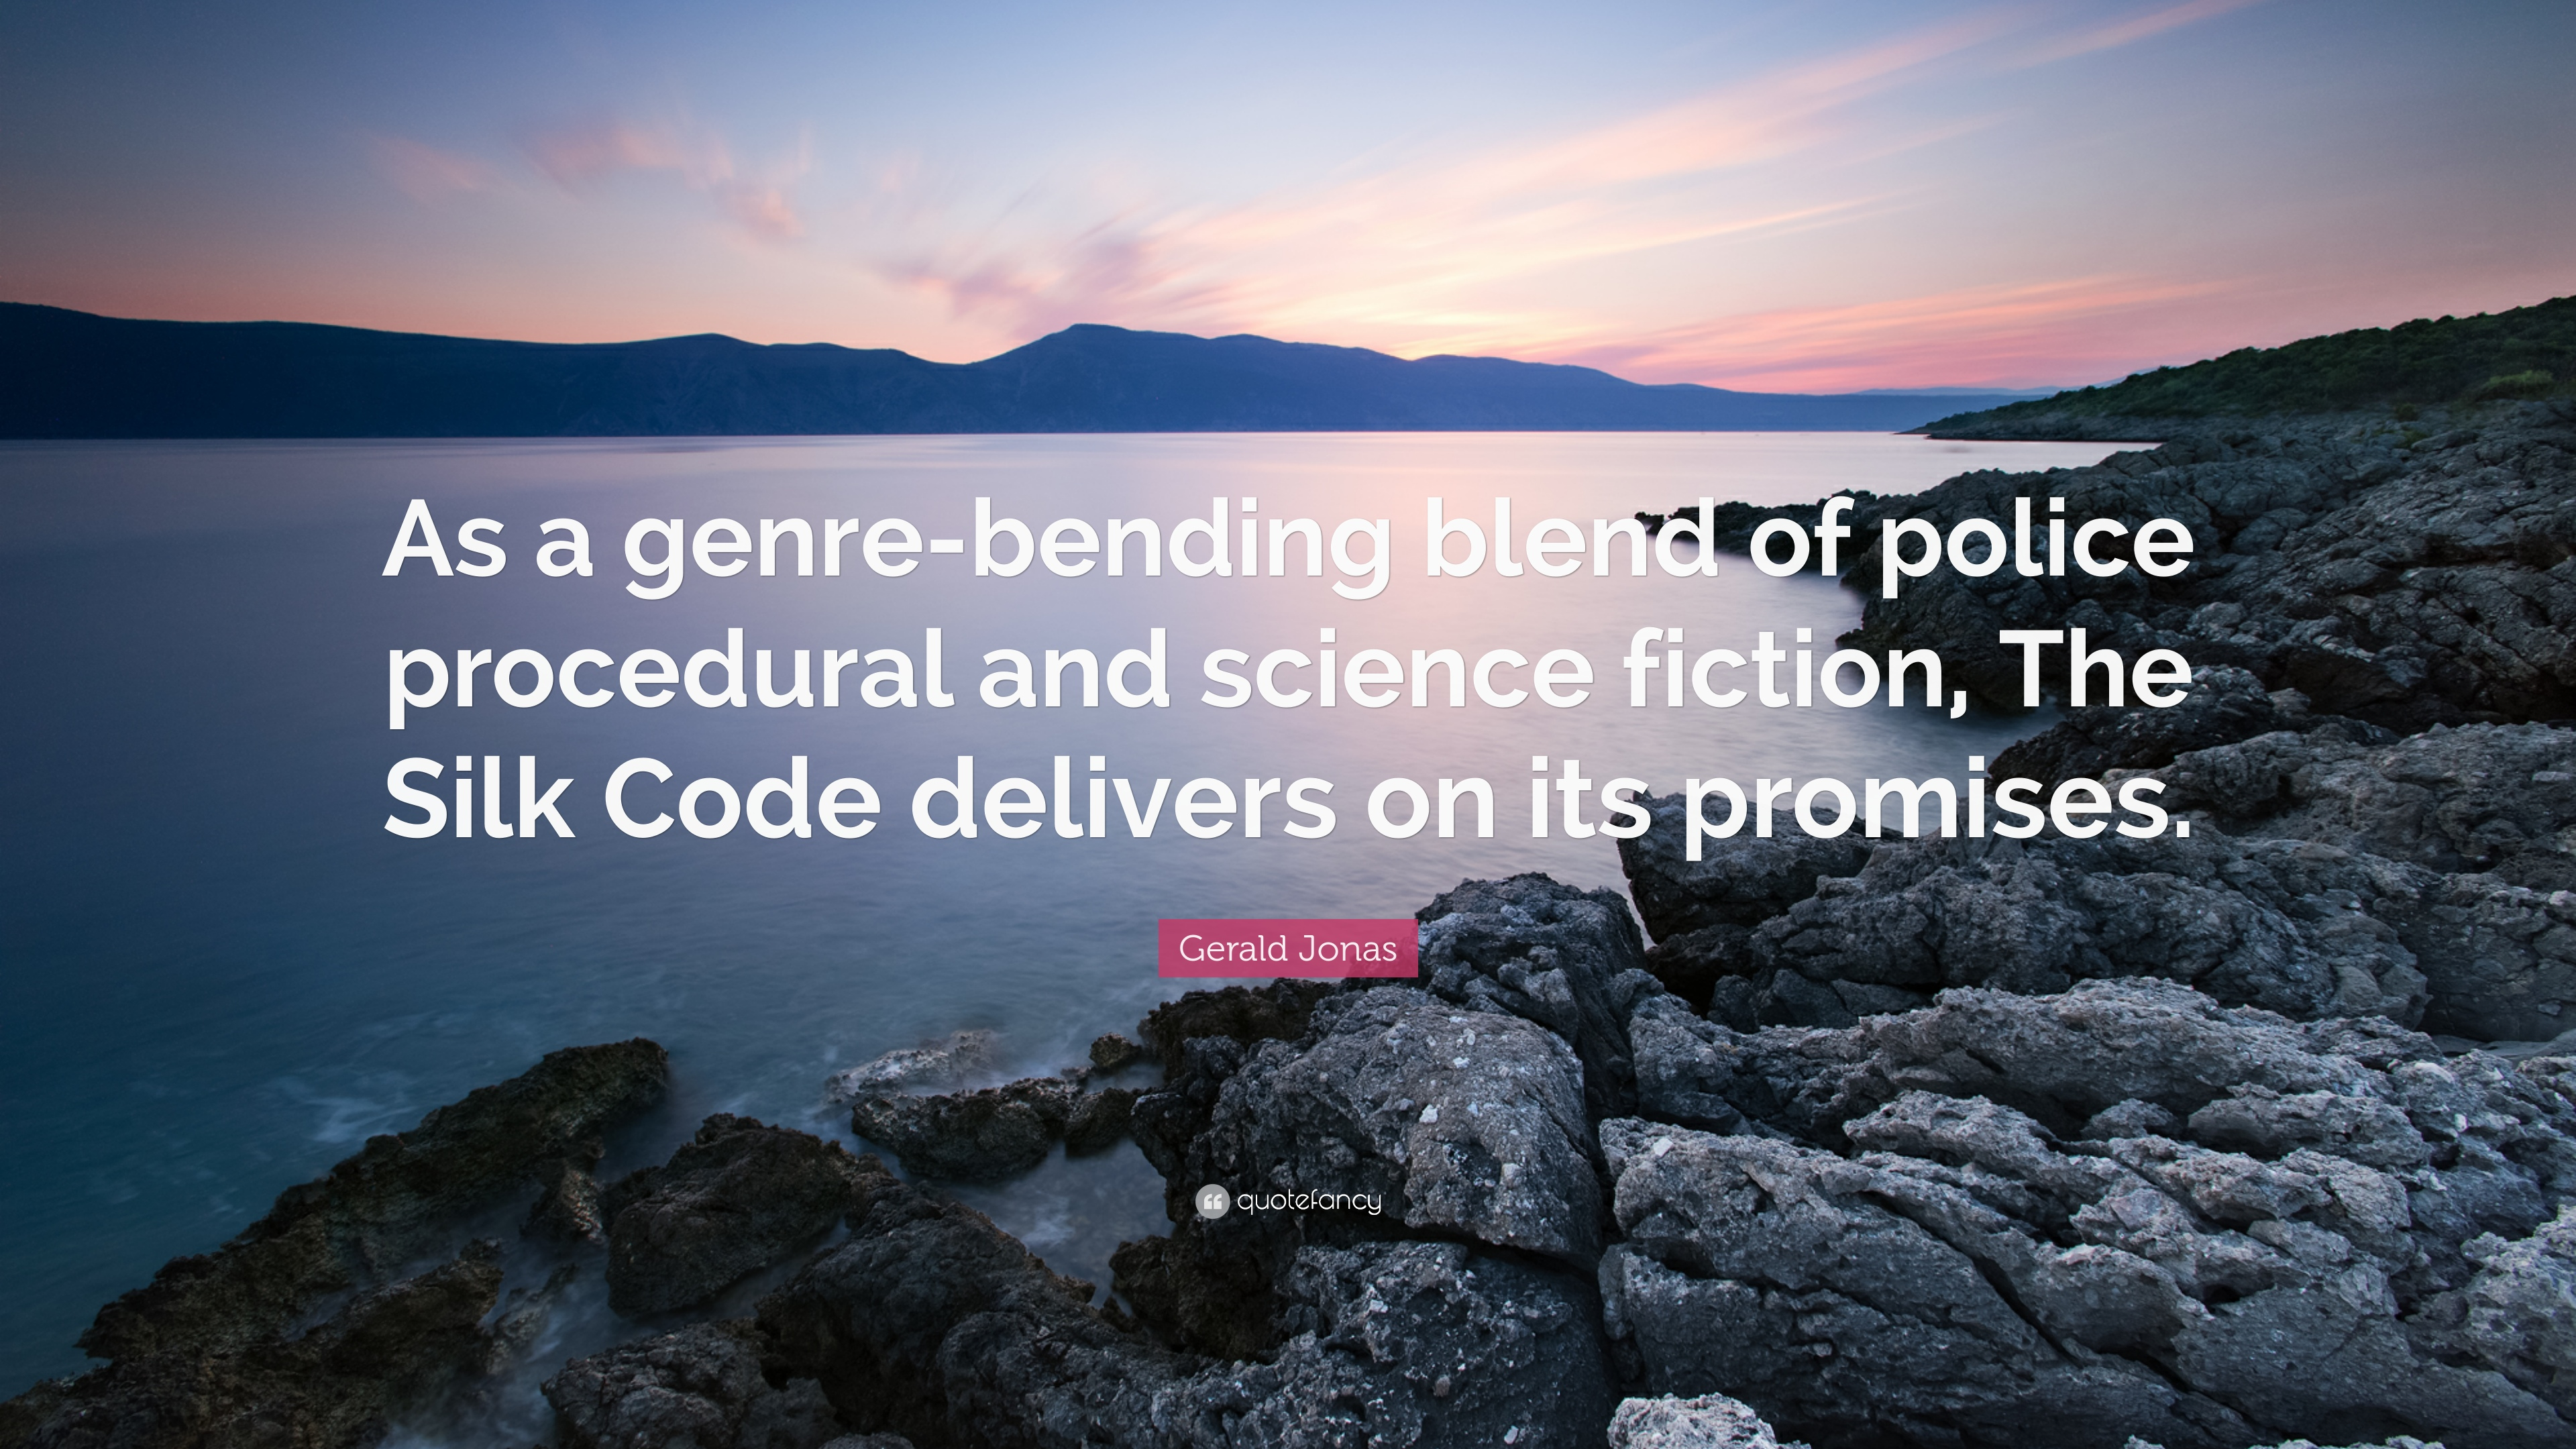 """Gerald Jonas Quote: """"As a genre-bending blend of police procedural and  science fiction, The Silk Code delivers on its promises."""" (7 wallpapers) -  Quotefancy"""